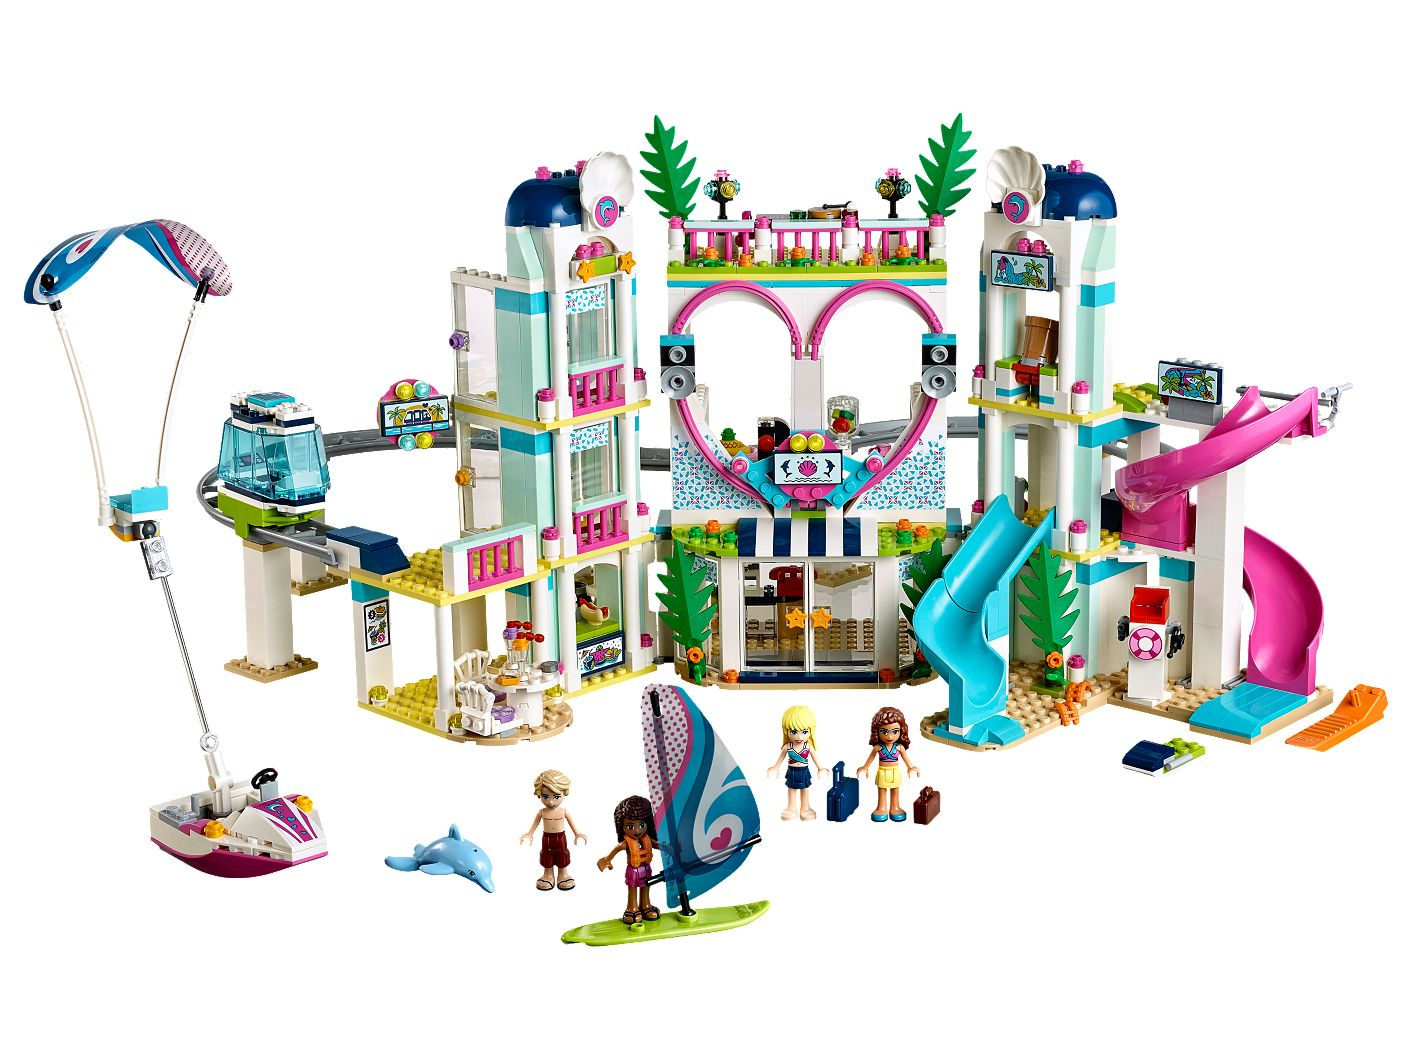 Heartlake City Resort 41347 | Friends | Buy online at the Official LEGO® Shop US